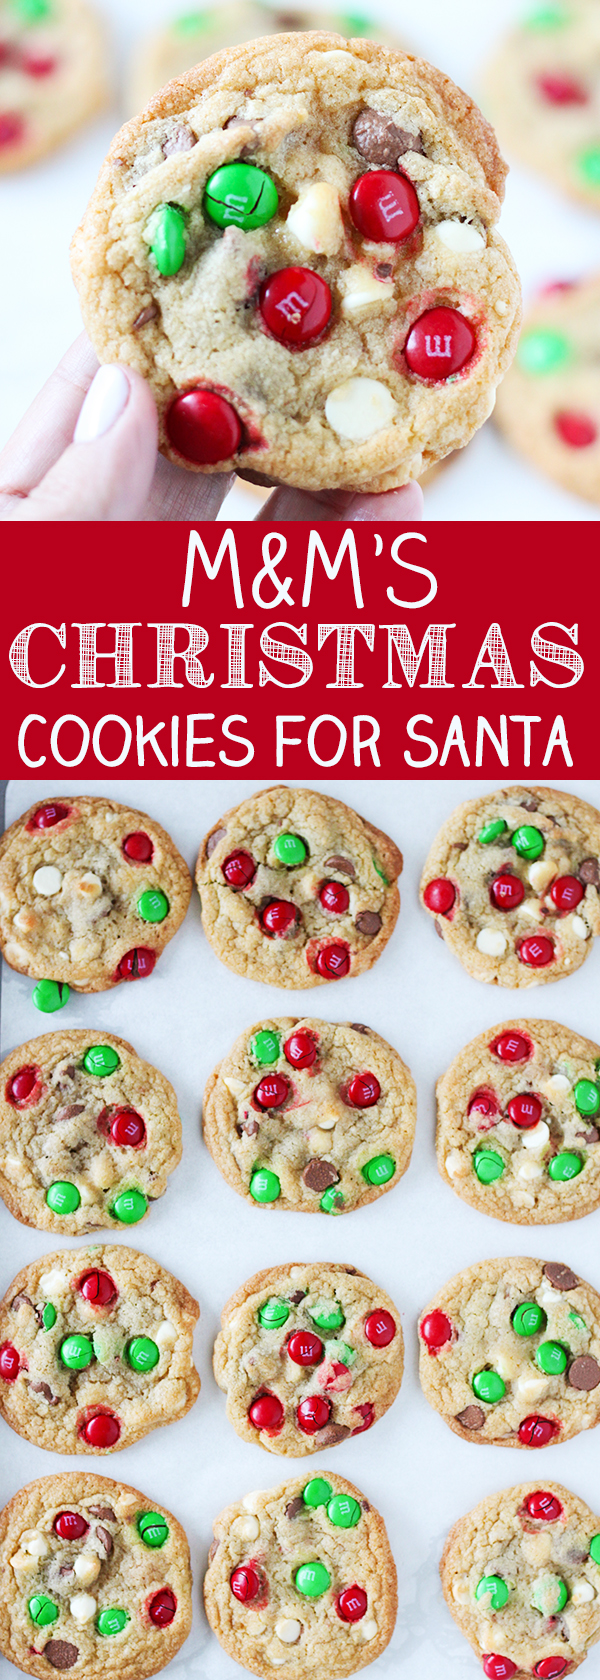 M&M's Christmas Cookies for Santa